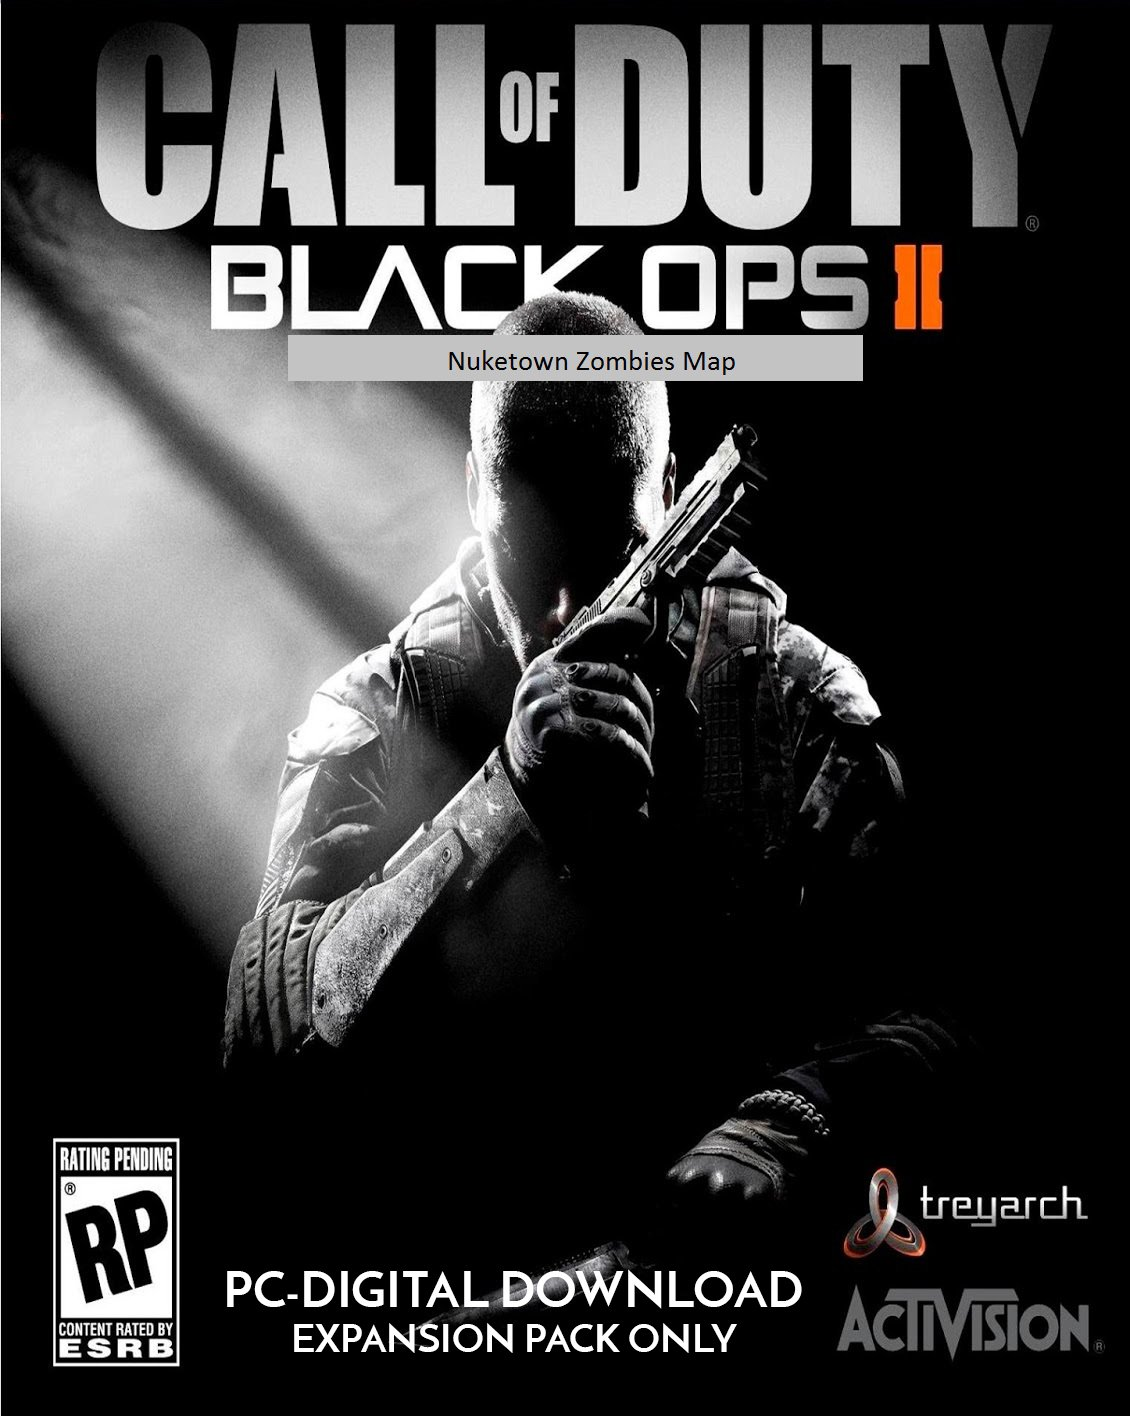 Buy Call Of Duty Black Ops Ii Nuketown Zombies Map Dlc Digital Code Only Pc Game Online At Low Prices In India Activision Video Games Amazon In